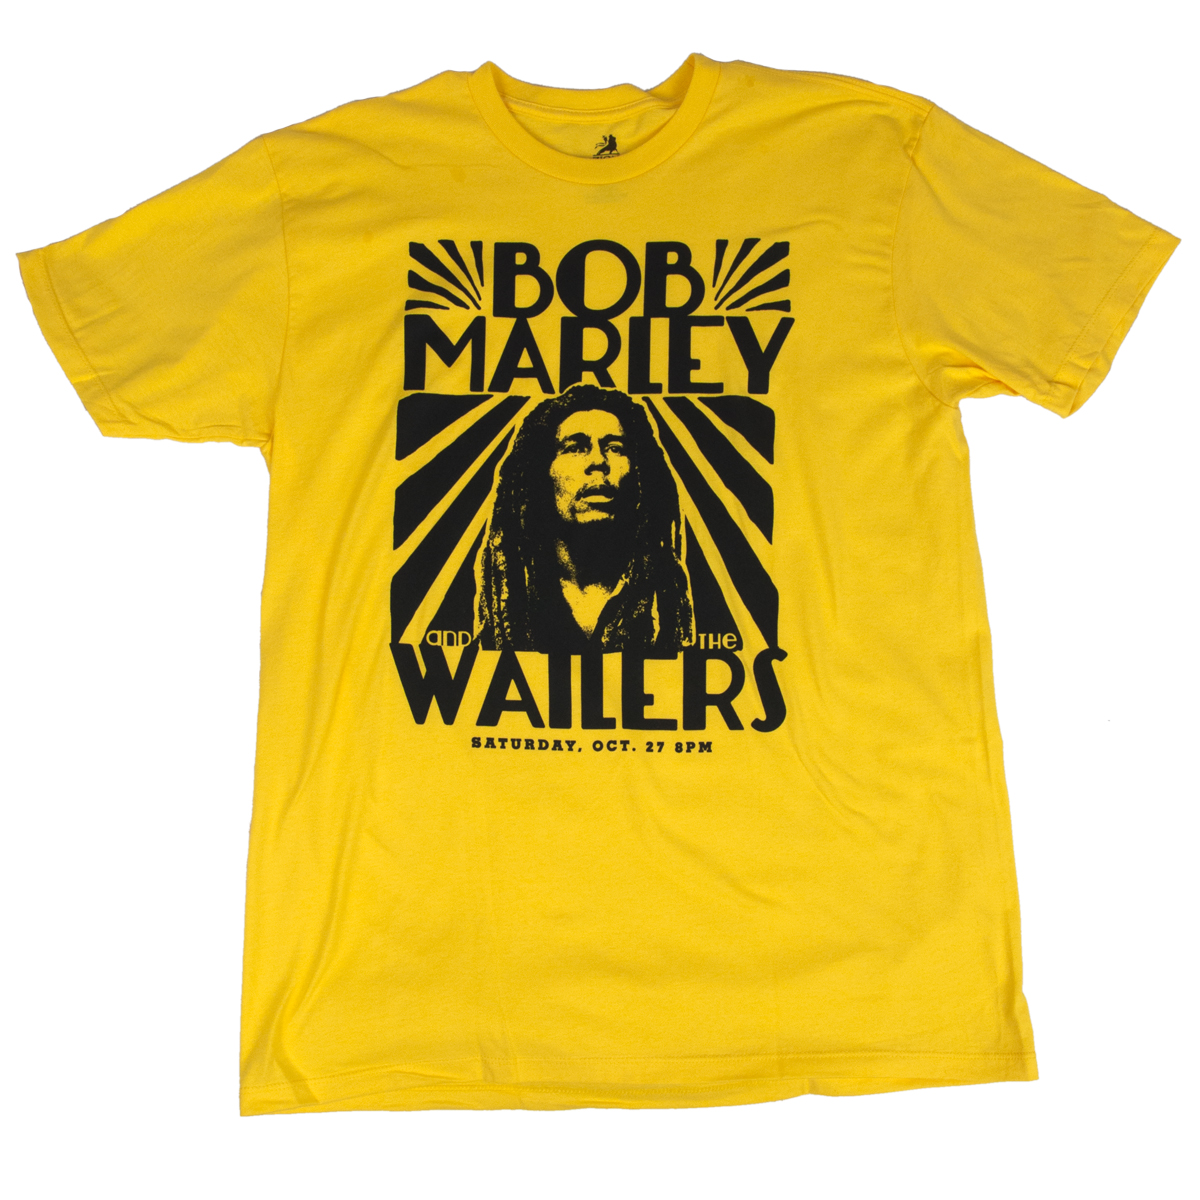 Bob Marley and The Wailers Vintage Yellow T-Shirt - Men's